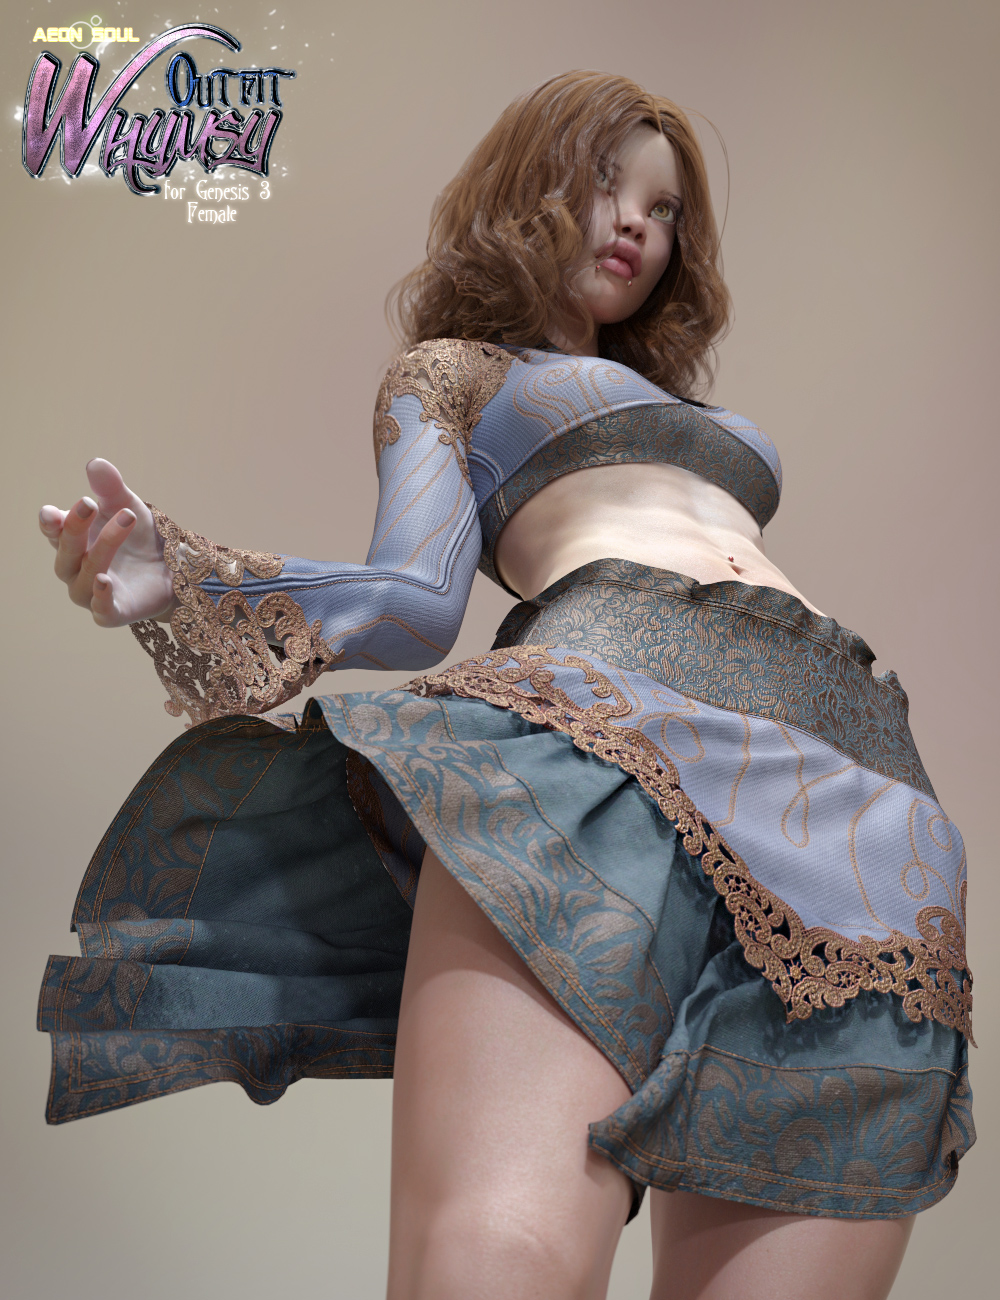 Whymsy Clothes for Genesis 3 Female(s) by: Aeon Soul, 3D Models by Daz 3D